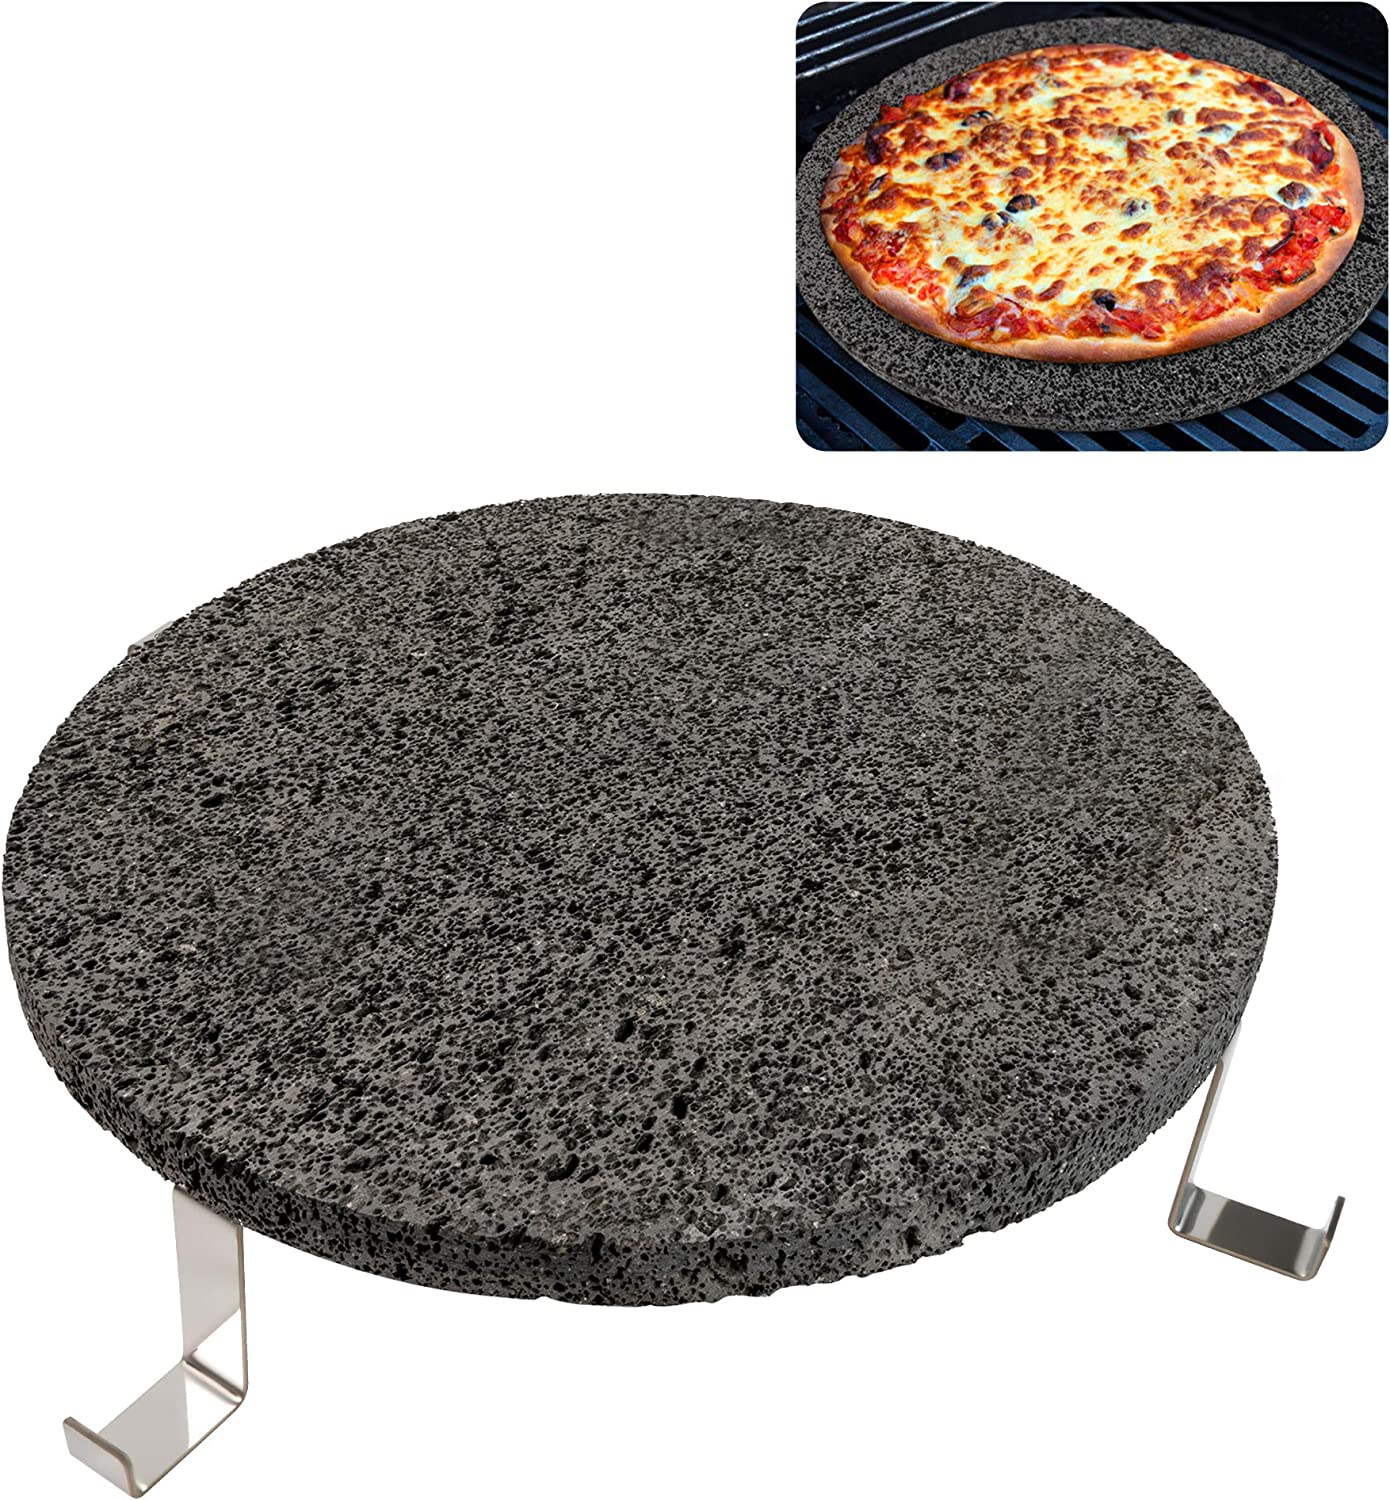 CHARAPID Lava Cooking Stone Set, Heat Deflector for Kamado Grilling